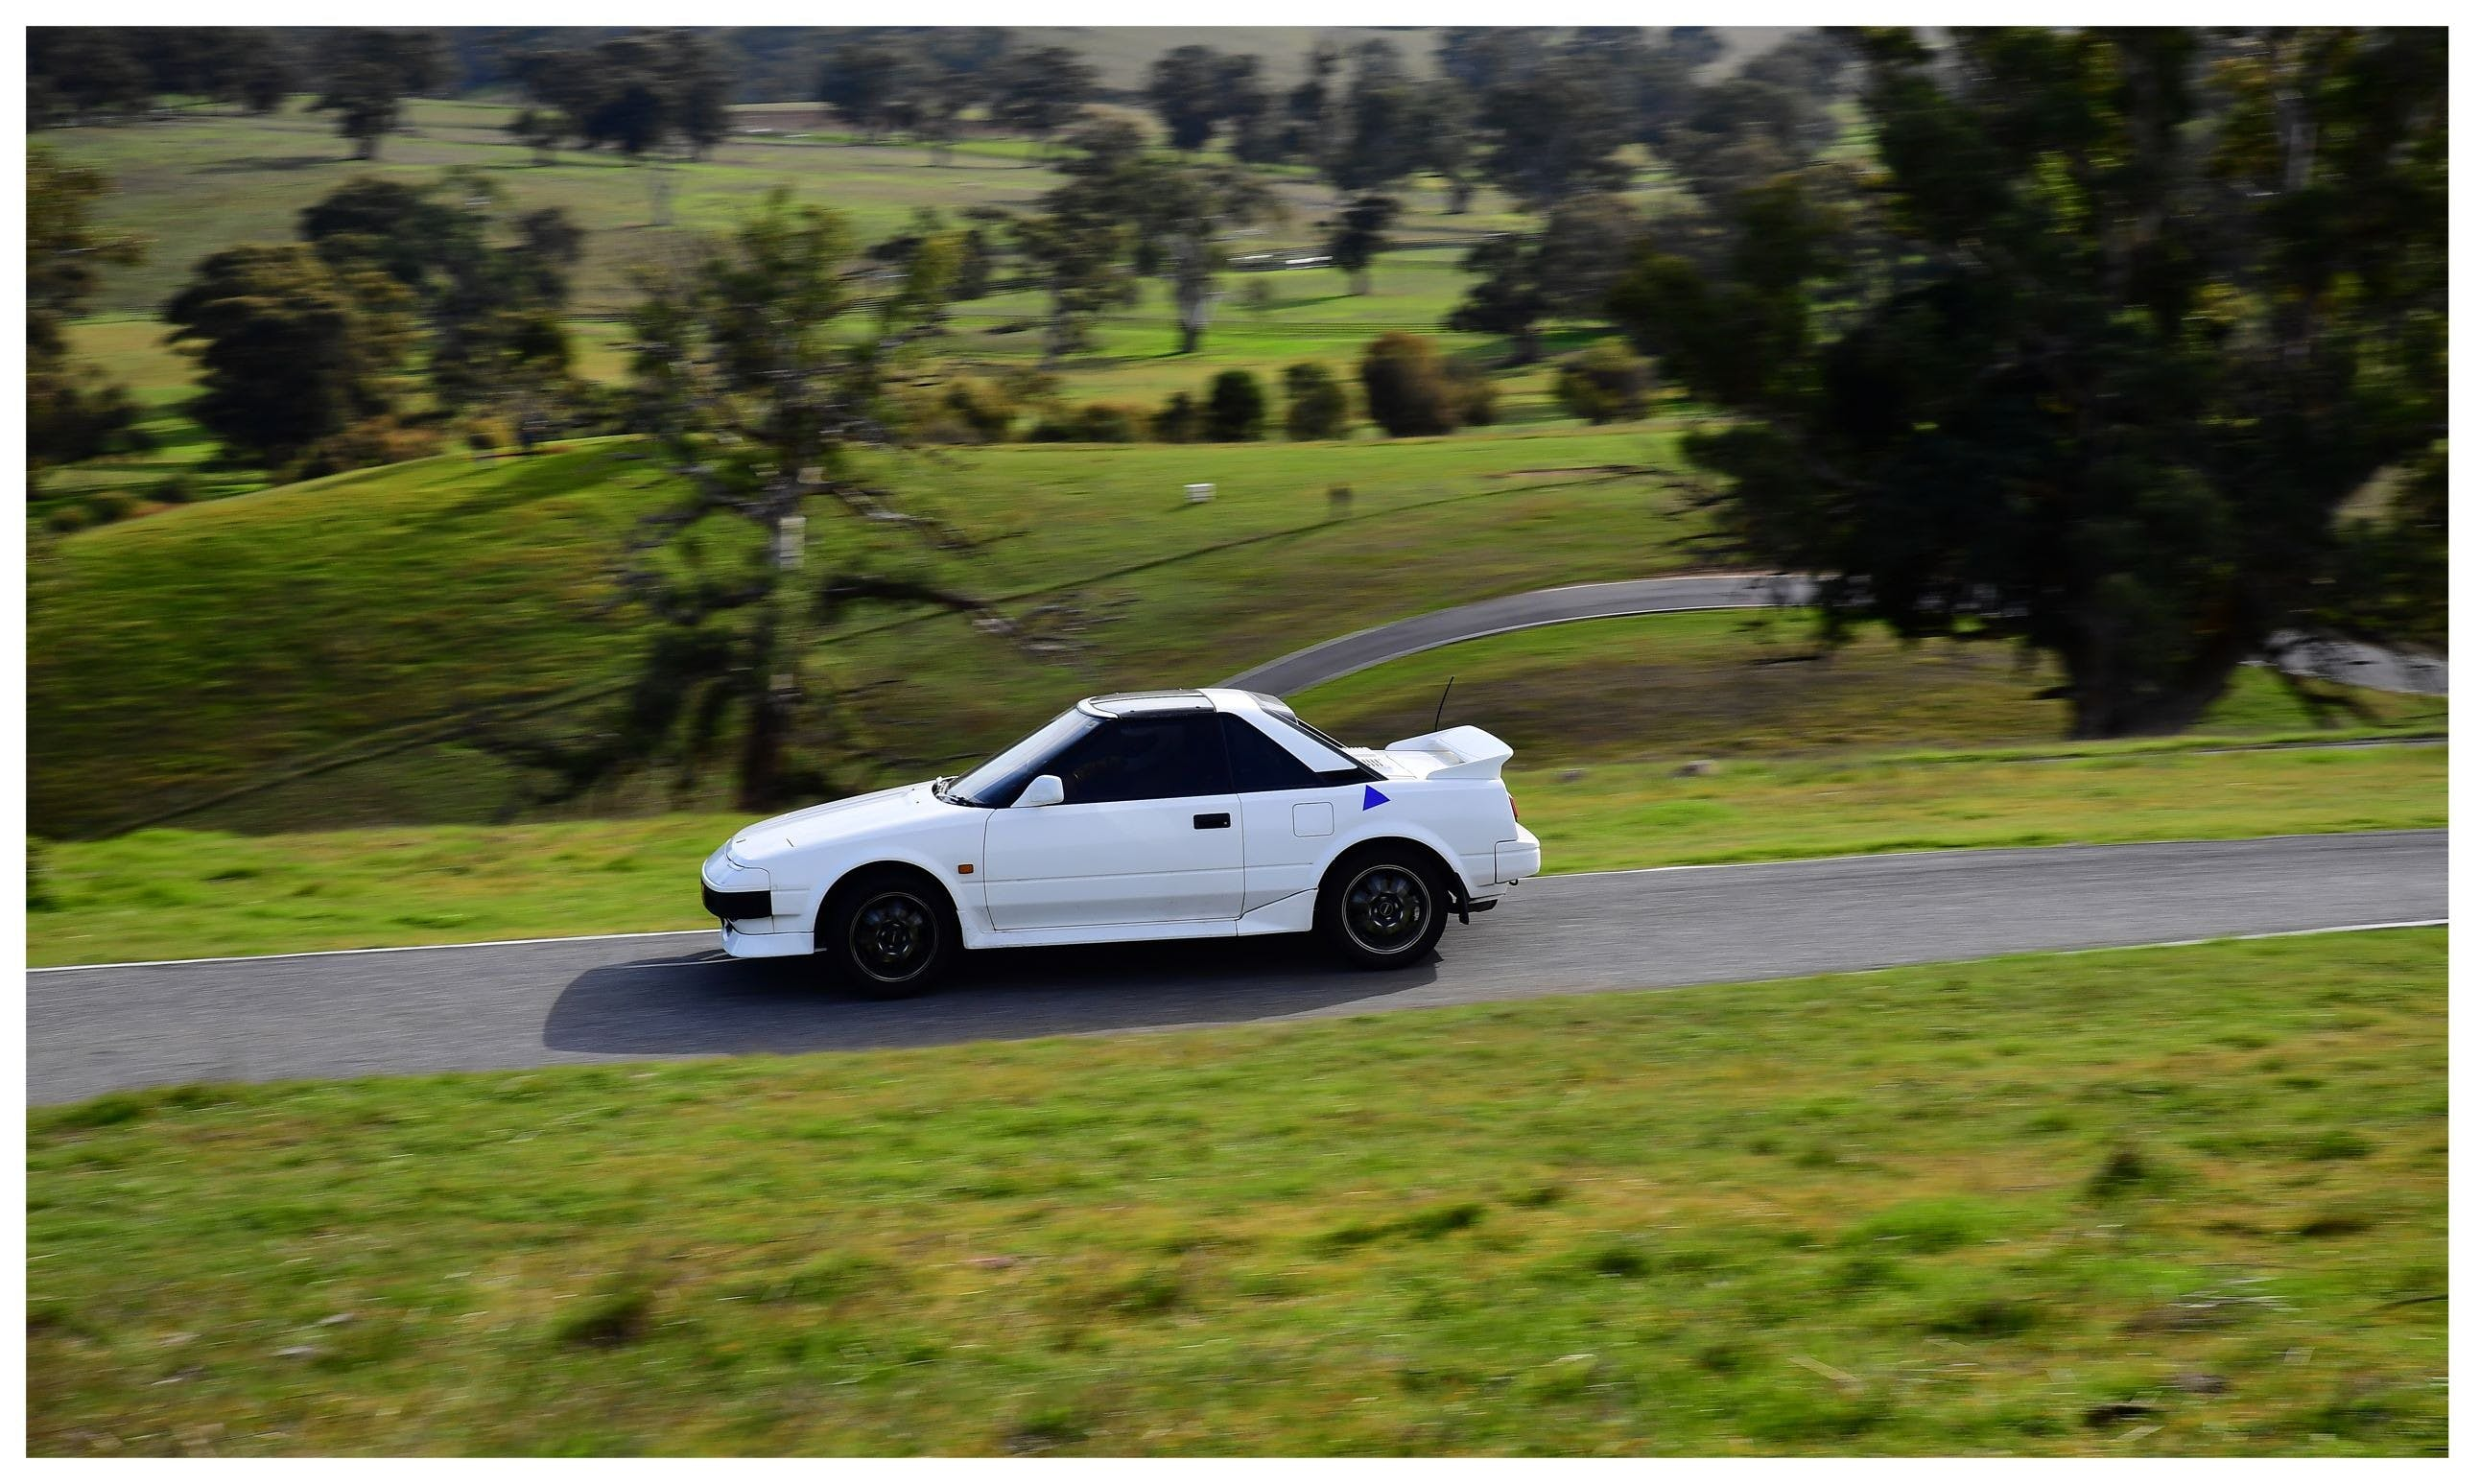 Winter Cup 4 - Hillclimb - Accommodation Brisbane